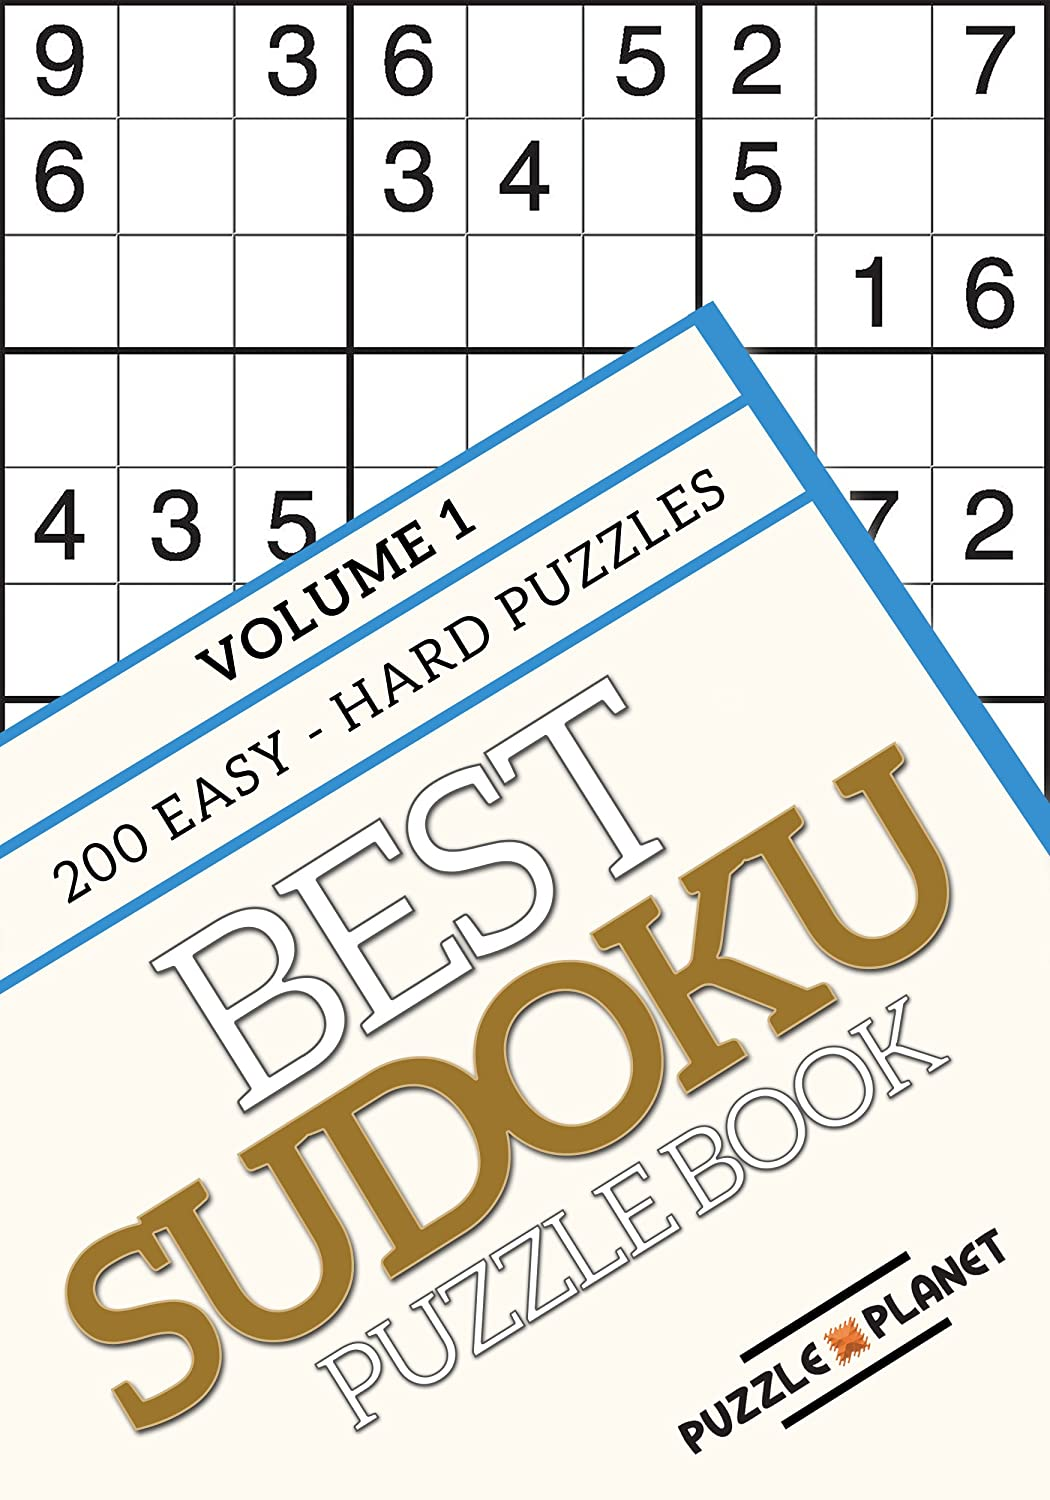 graphic relating to Sudoku Puzzles Printable Pdf called Easiest Sudoku Puzzle Ebook - 1: Anti-Pressure, Soothing Sudoku